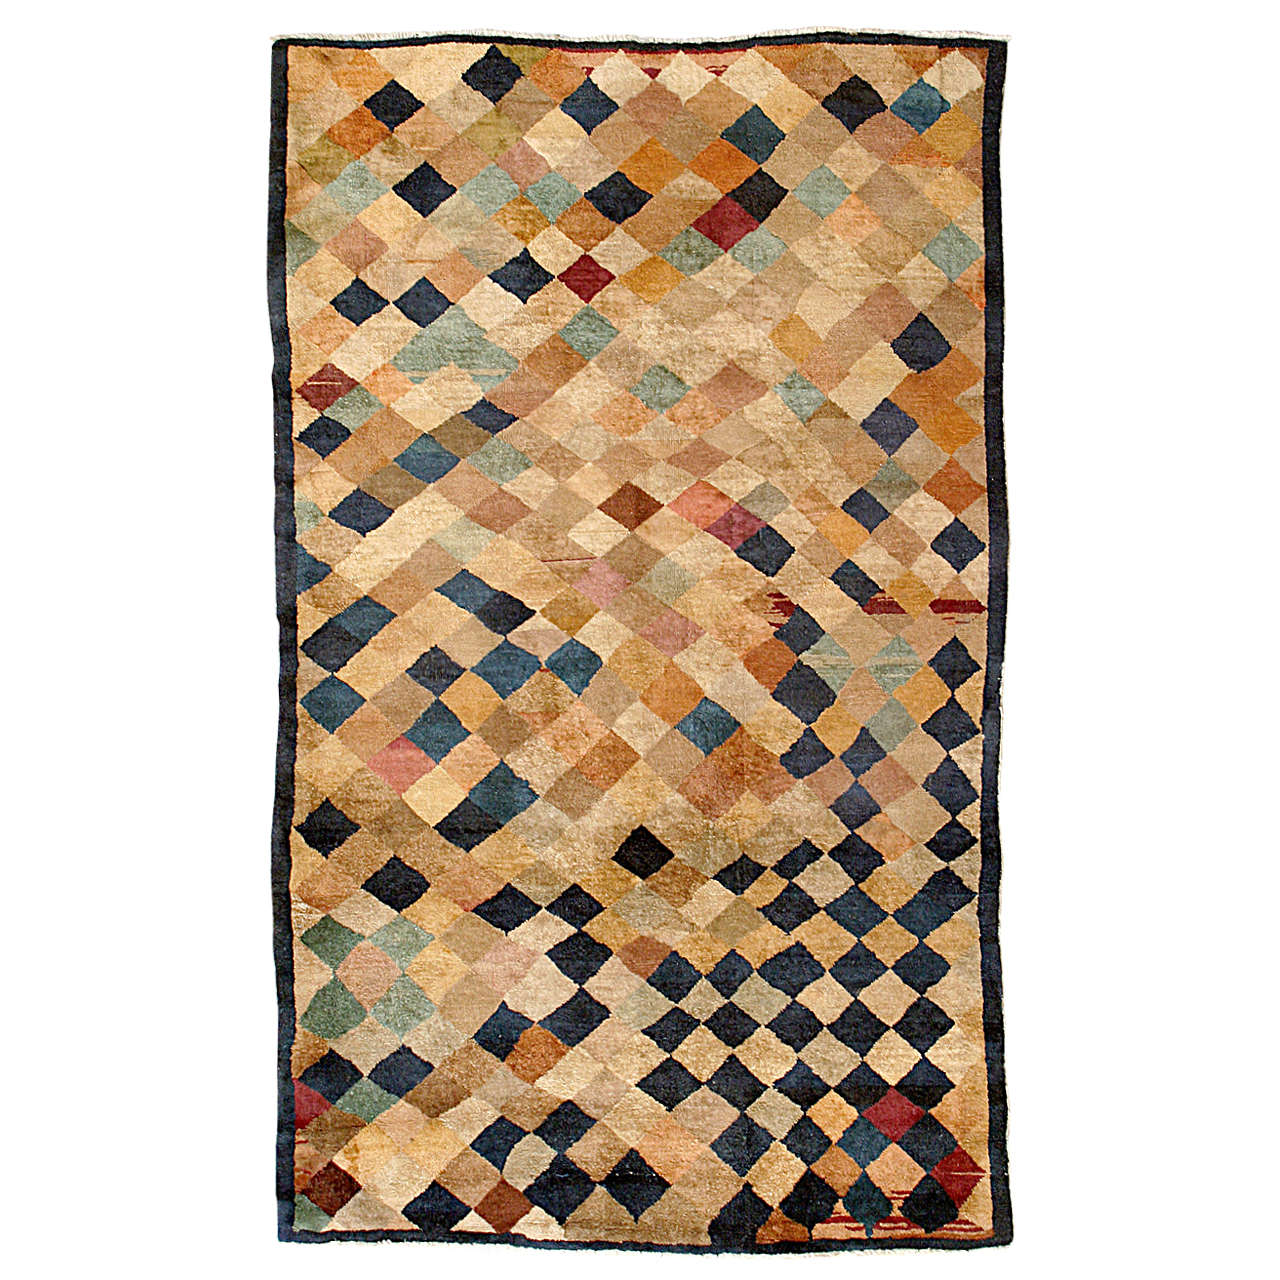 Antique Art Deco Geometric Chinese Rug with Polychrome Lozenges